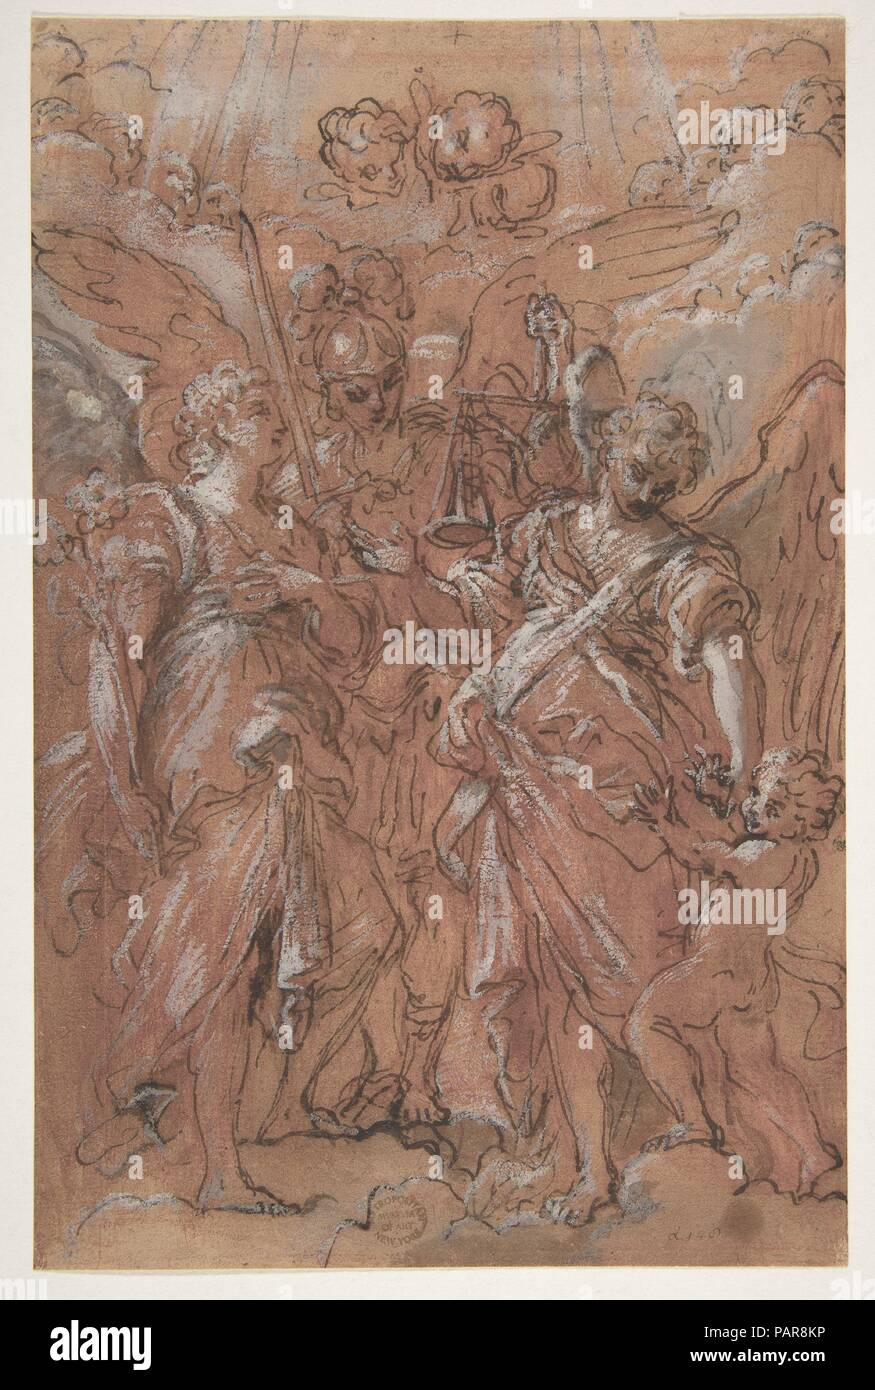 The Archangels Gabriel, Michael and Raphael (recto); sketches of figures (verso). Artist: Giuseppe Passeri (Passari) (Italian, Rome 1654-1714 Rome). Dimensions: 9 1/2 x 6 1/4in. (24.2 x 15.8cm). Date: 1654-1714. Museum: Metropolitan Museum of Art, New York, USA. - Stock Image